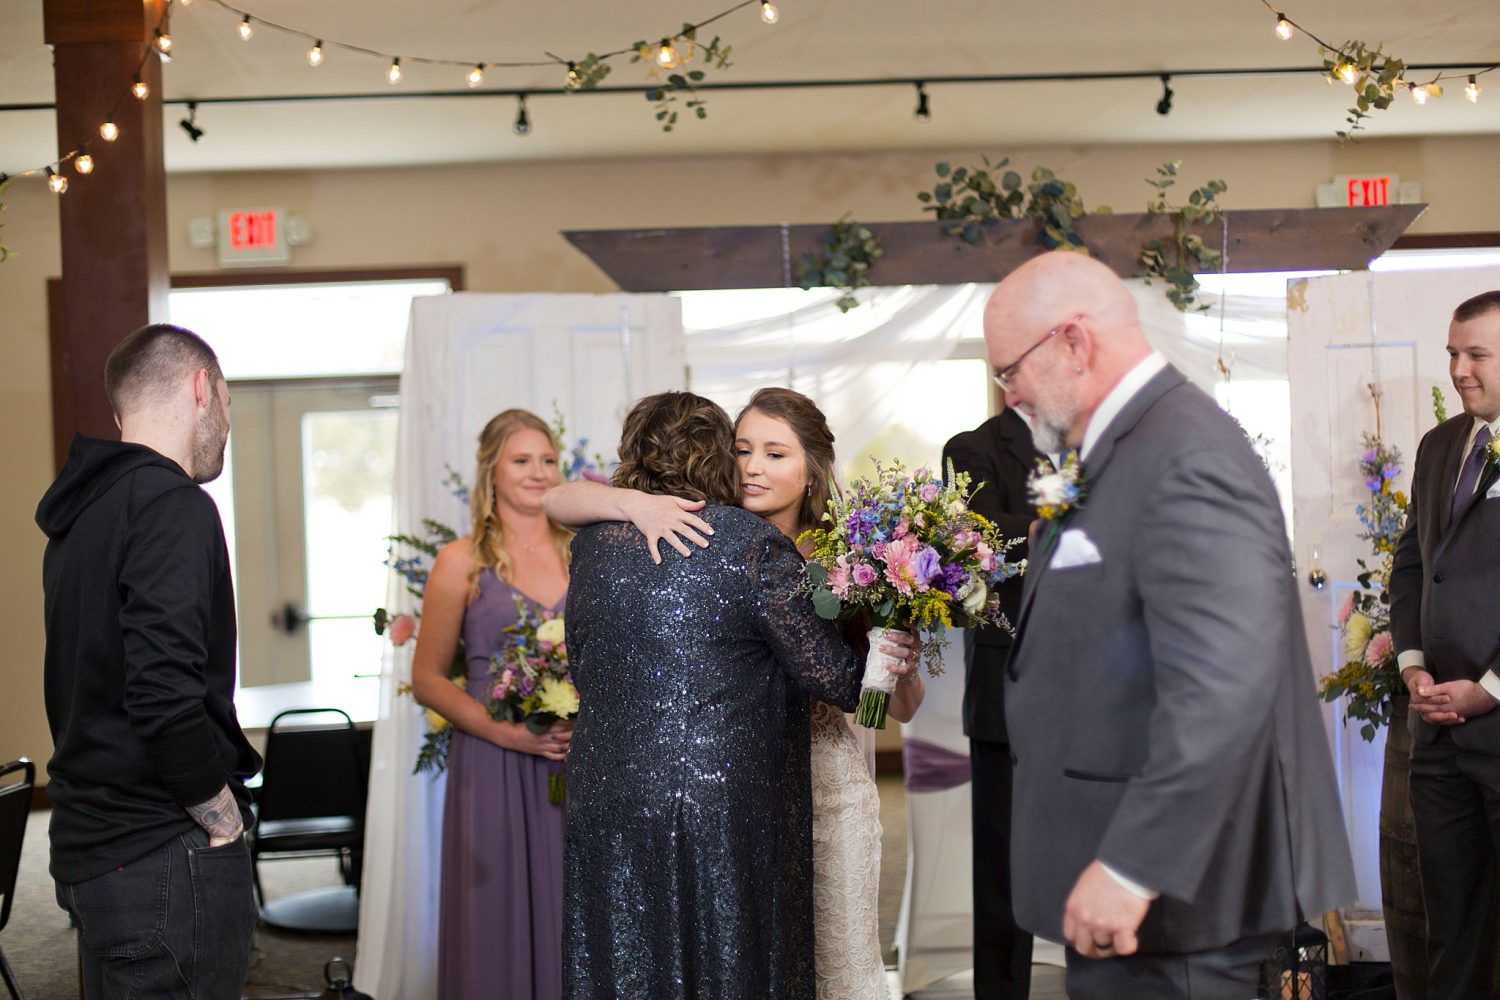 Bride hugs her mom as she is given away to her groom.